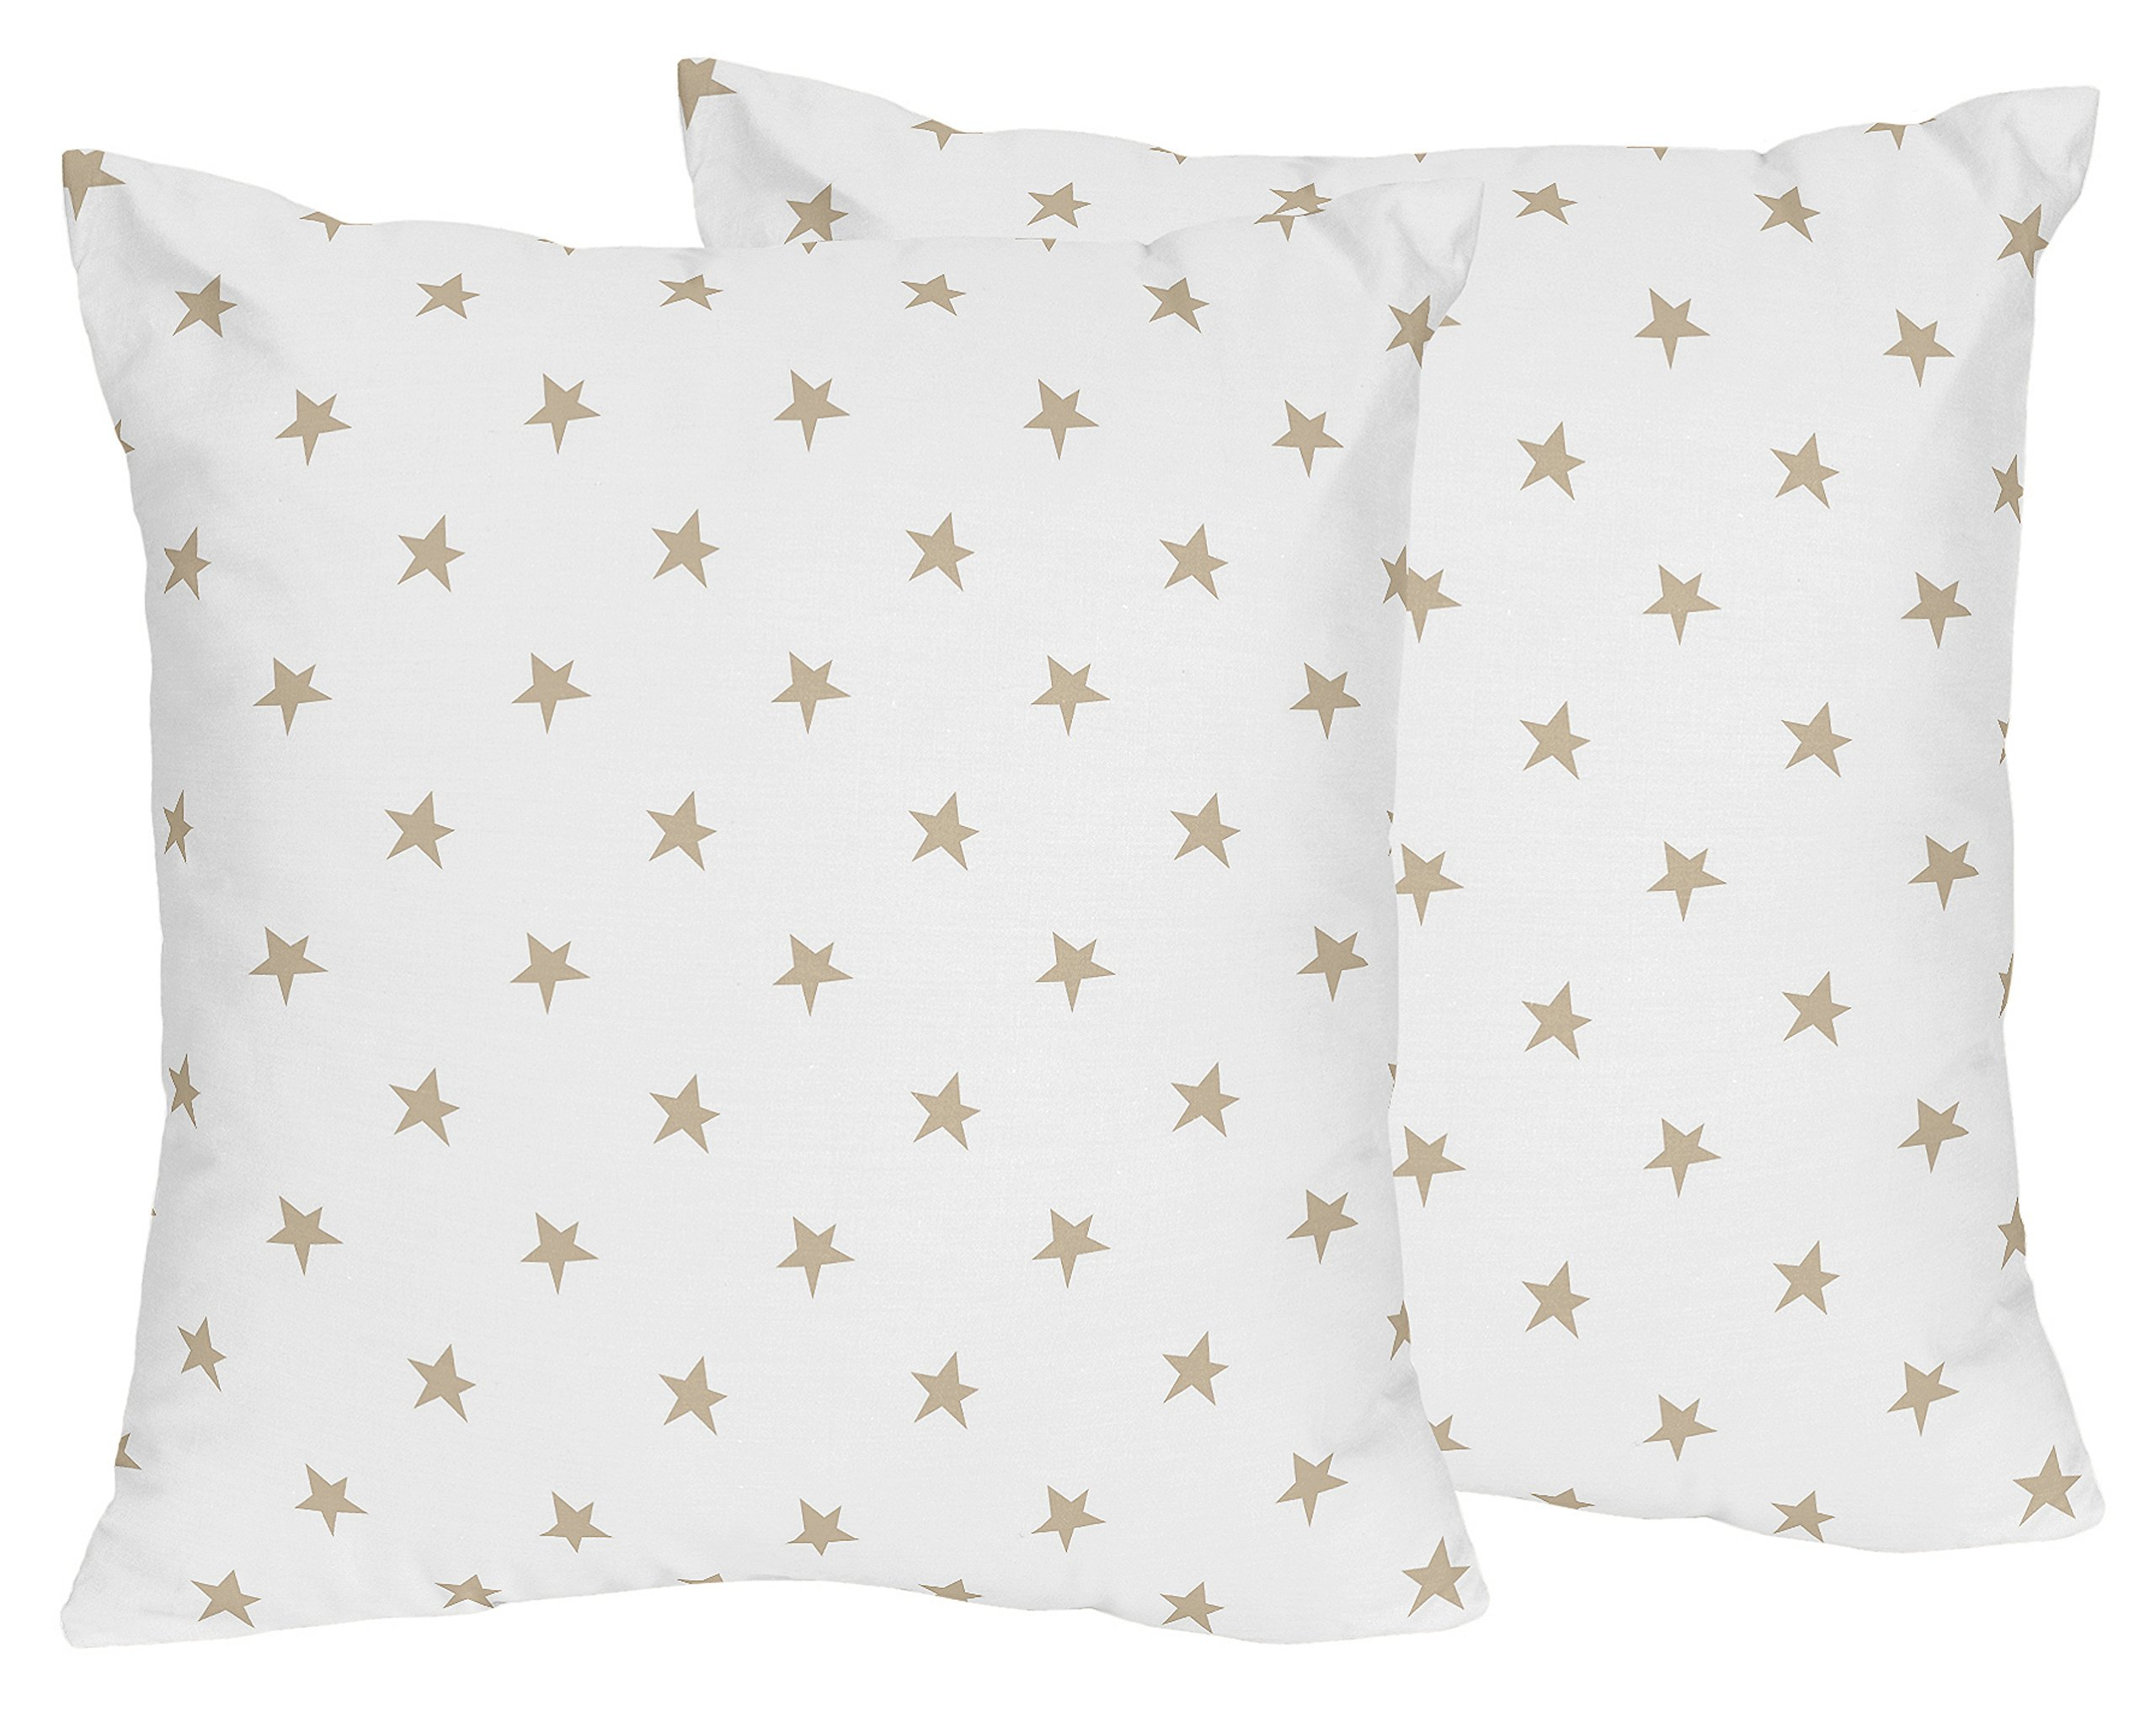 Sweet JoJo Designs 2-Piece Gold and White Star Decorative Accent Throw Pillows for Celestial Collection by